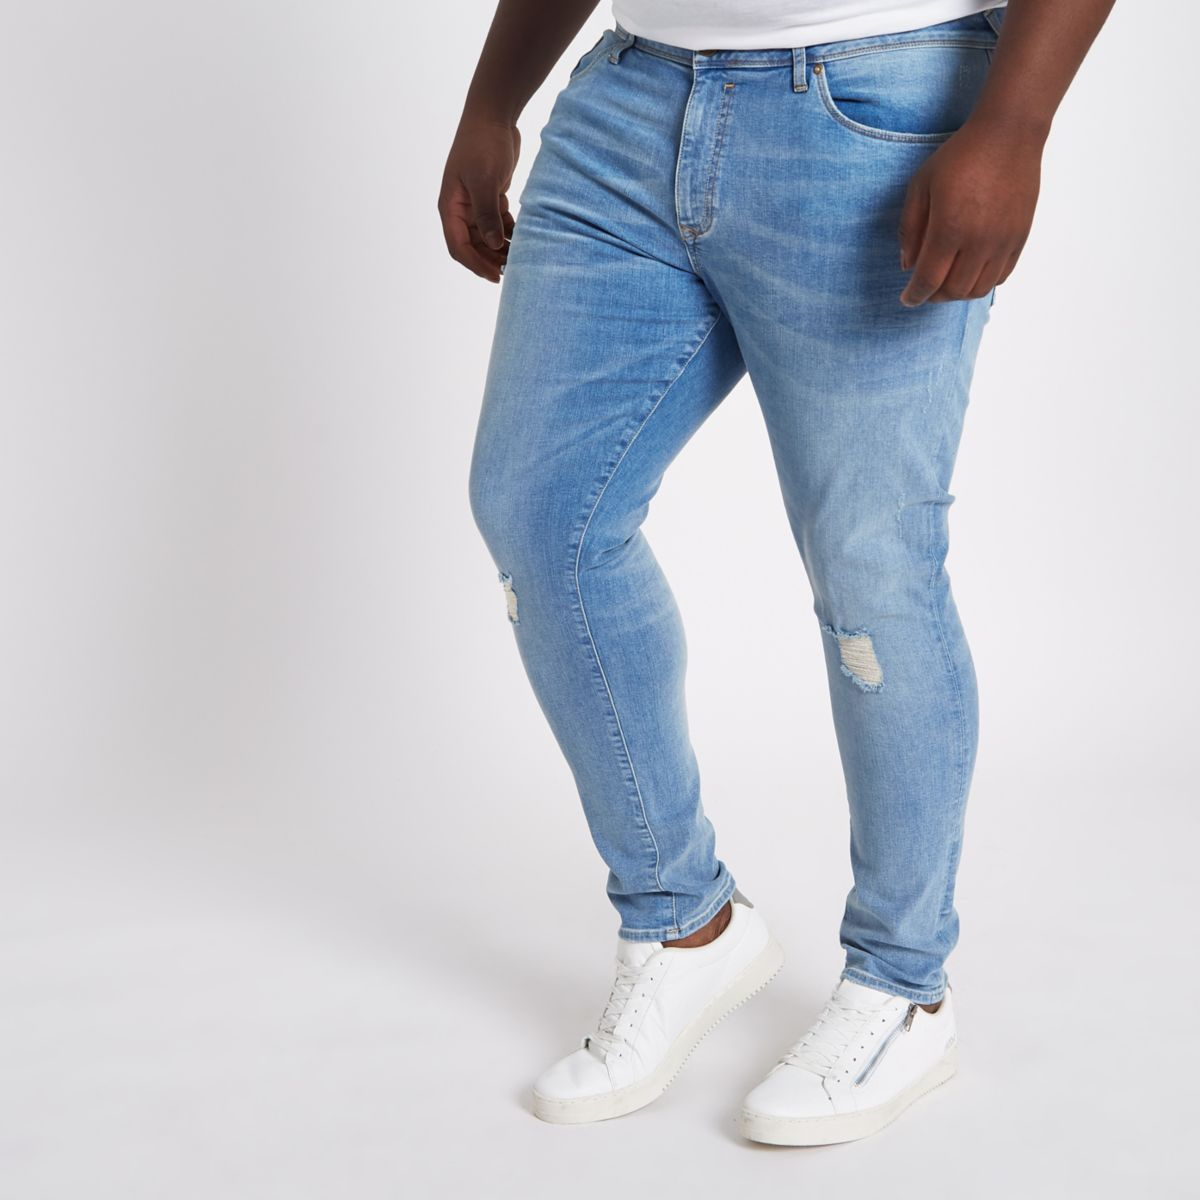 Get ready for a day at work or a weekend barbecue with big and tall jeans. Before you lace up your work boots or throw on a tie for the office, everyday style starts with a great fitting pair of jeans.